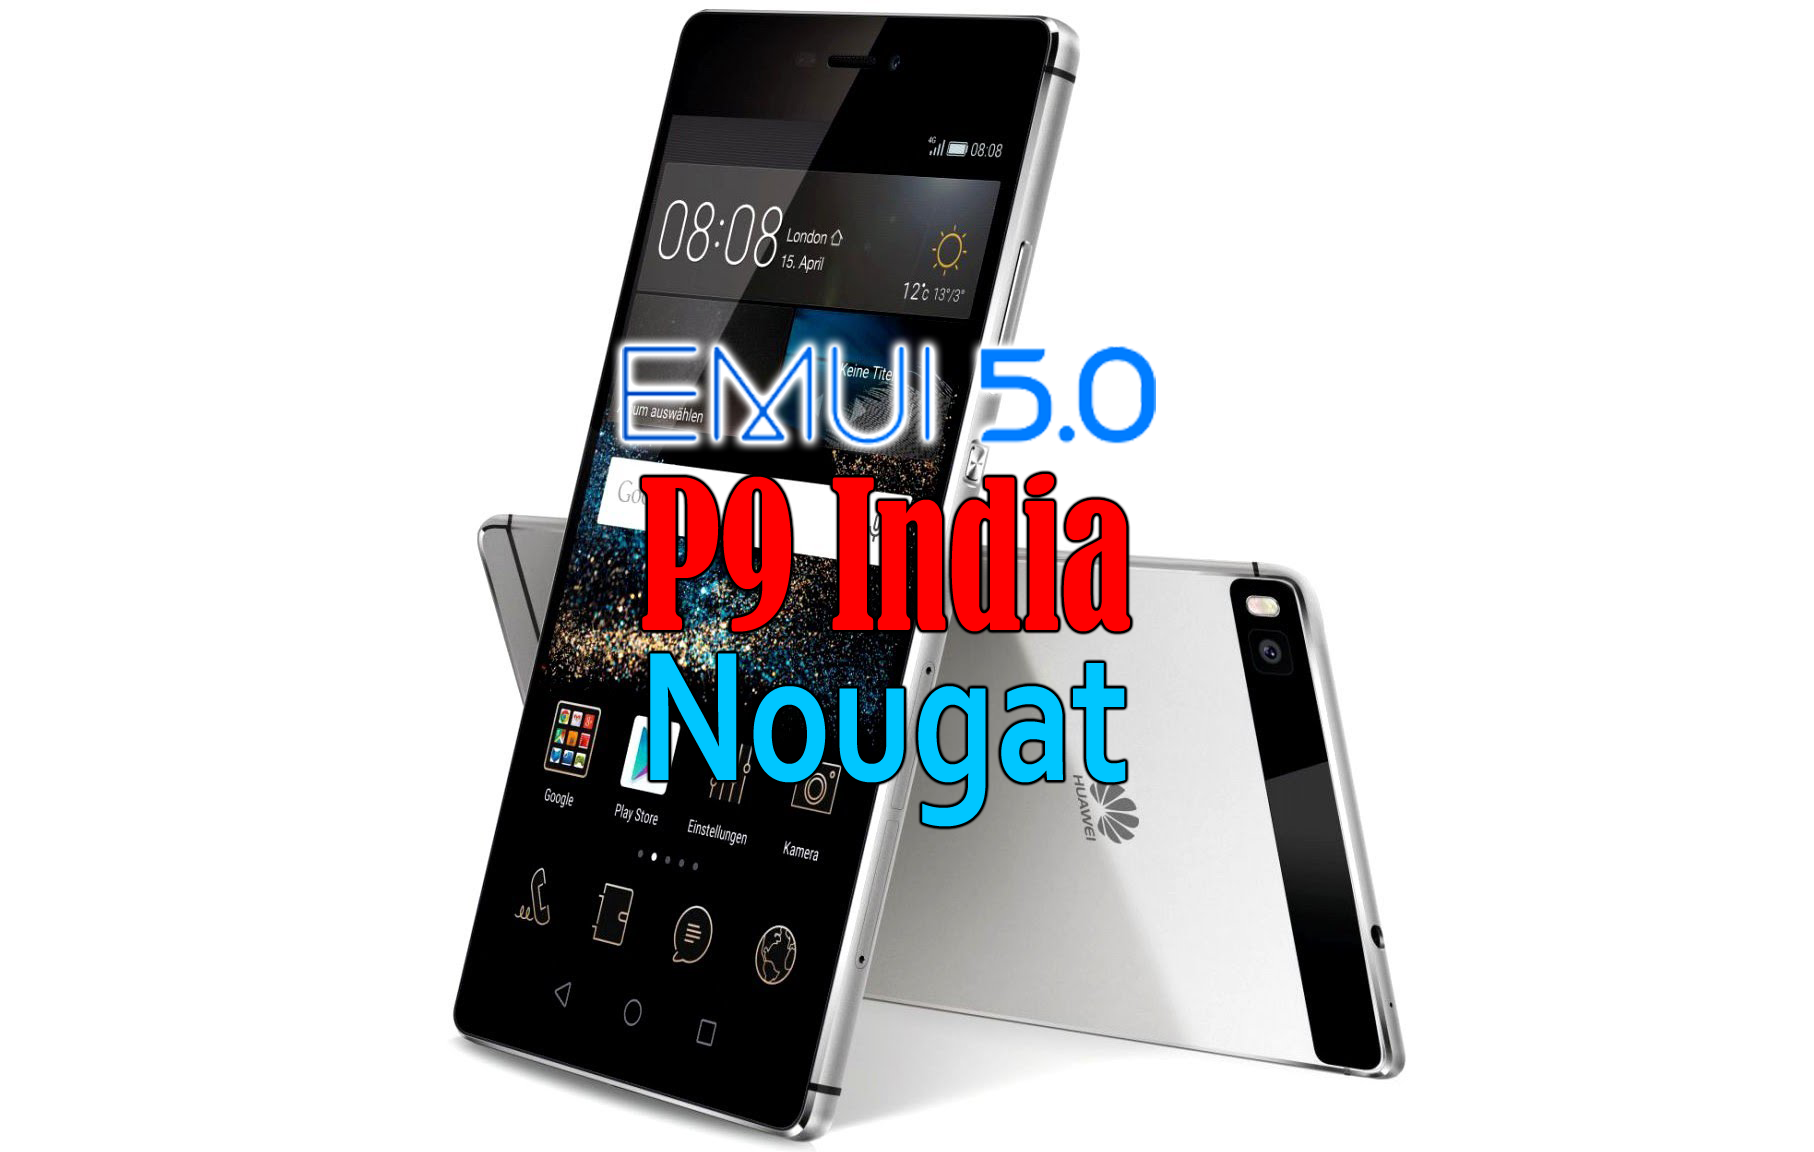 Huawei P9 Nougat B301 Firmware (India) VOLTE, EMUI 5 0 - Ministry Of